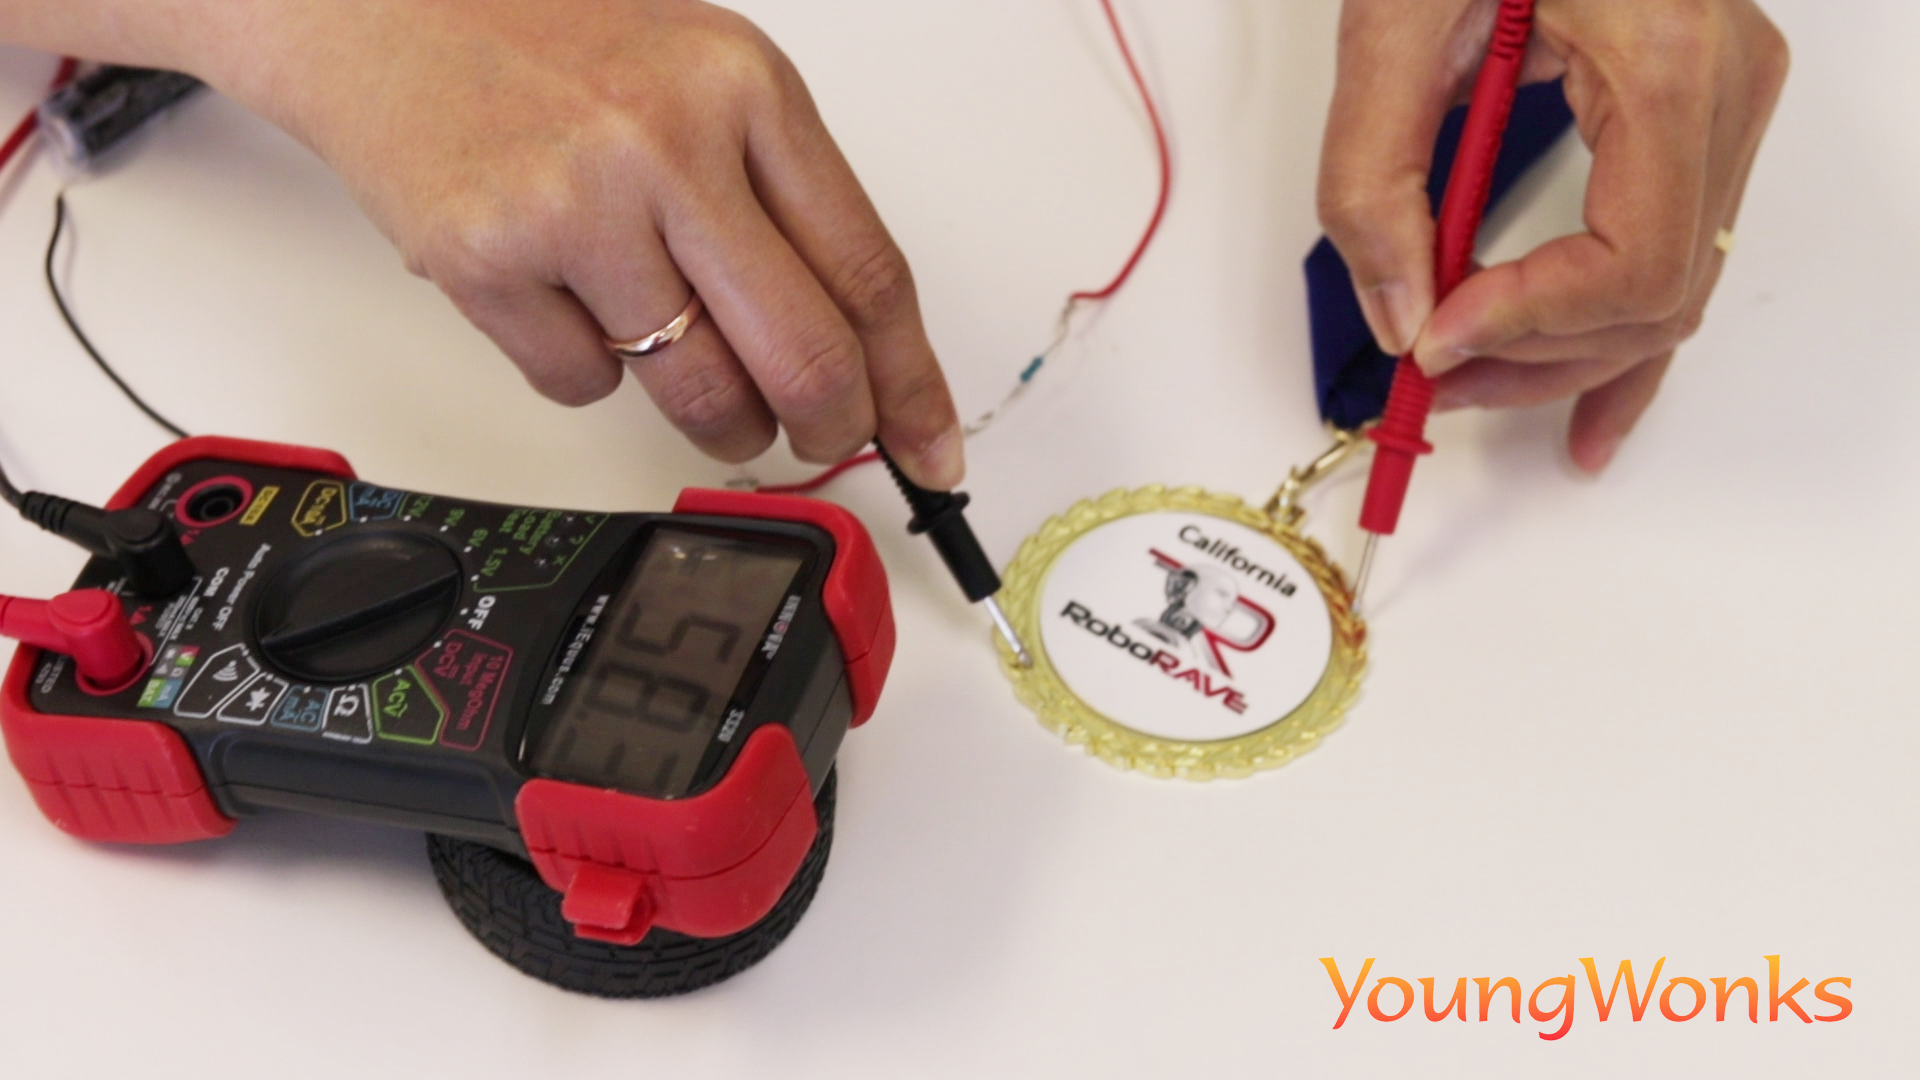 Checking for conductivity between points of a medal